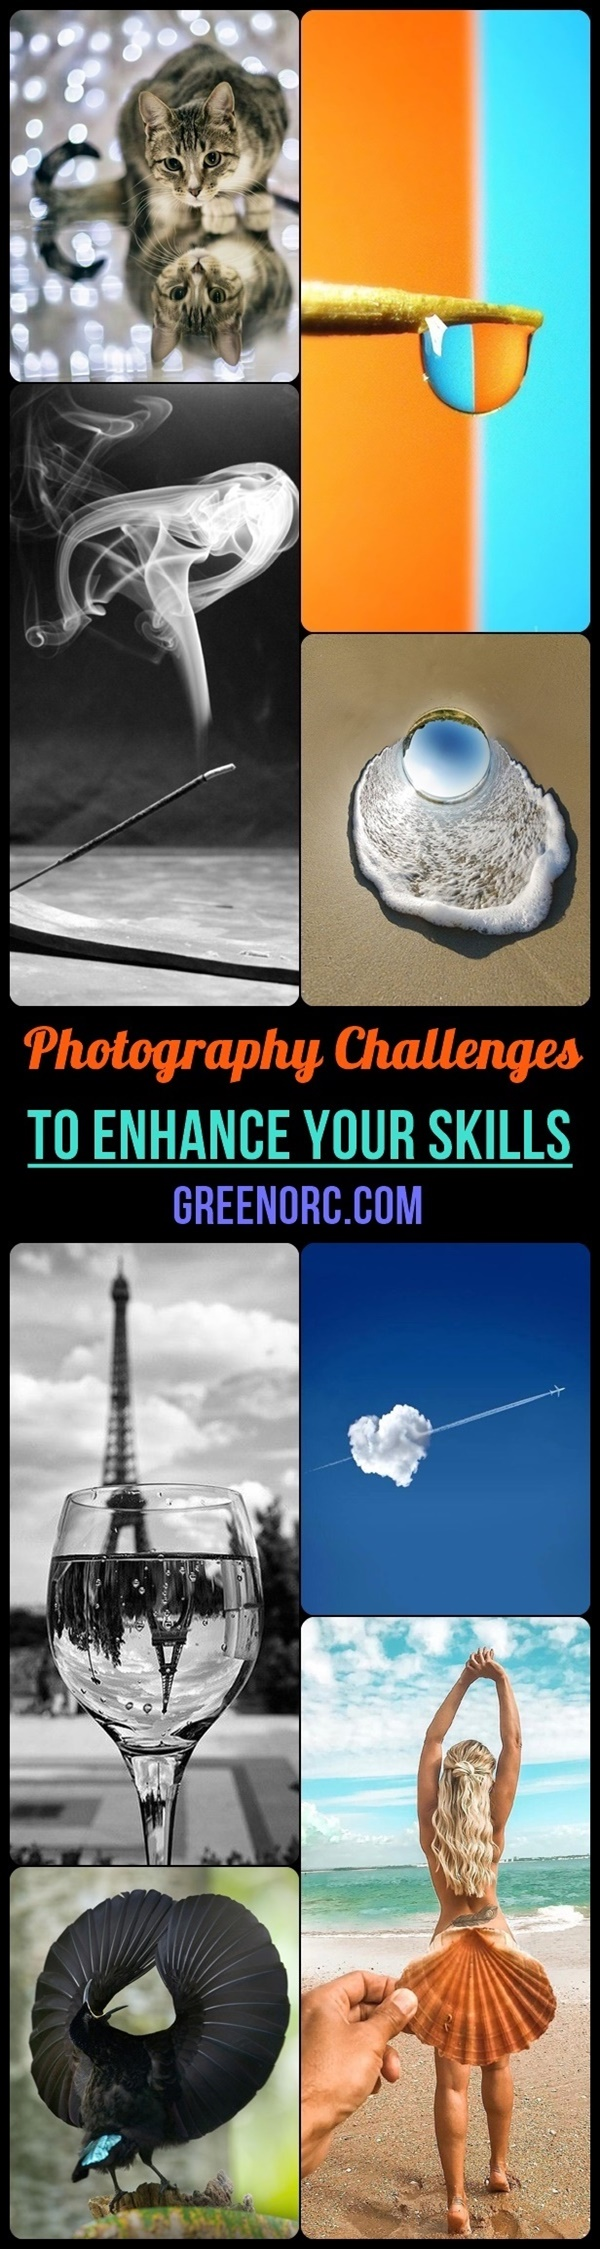 Photography Challenges To Enhance Your Skills